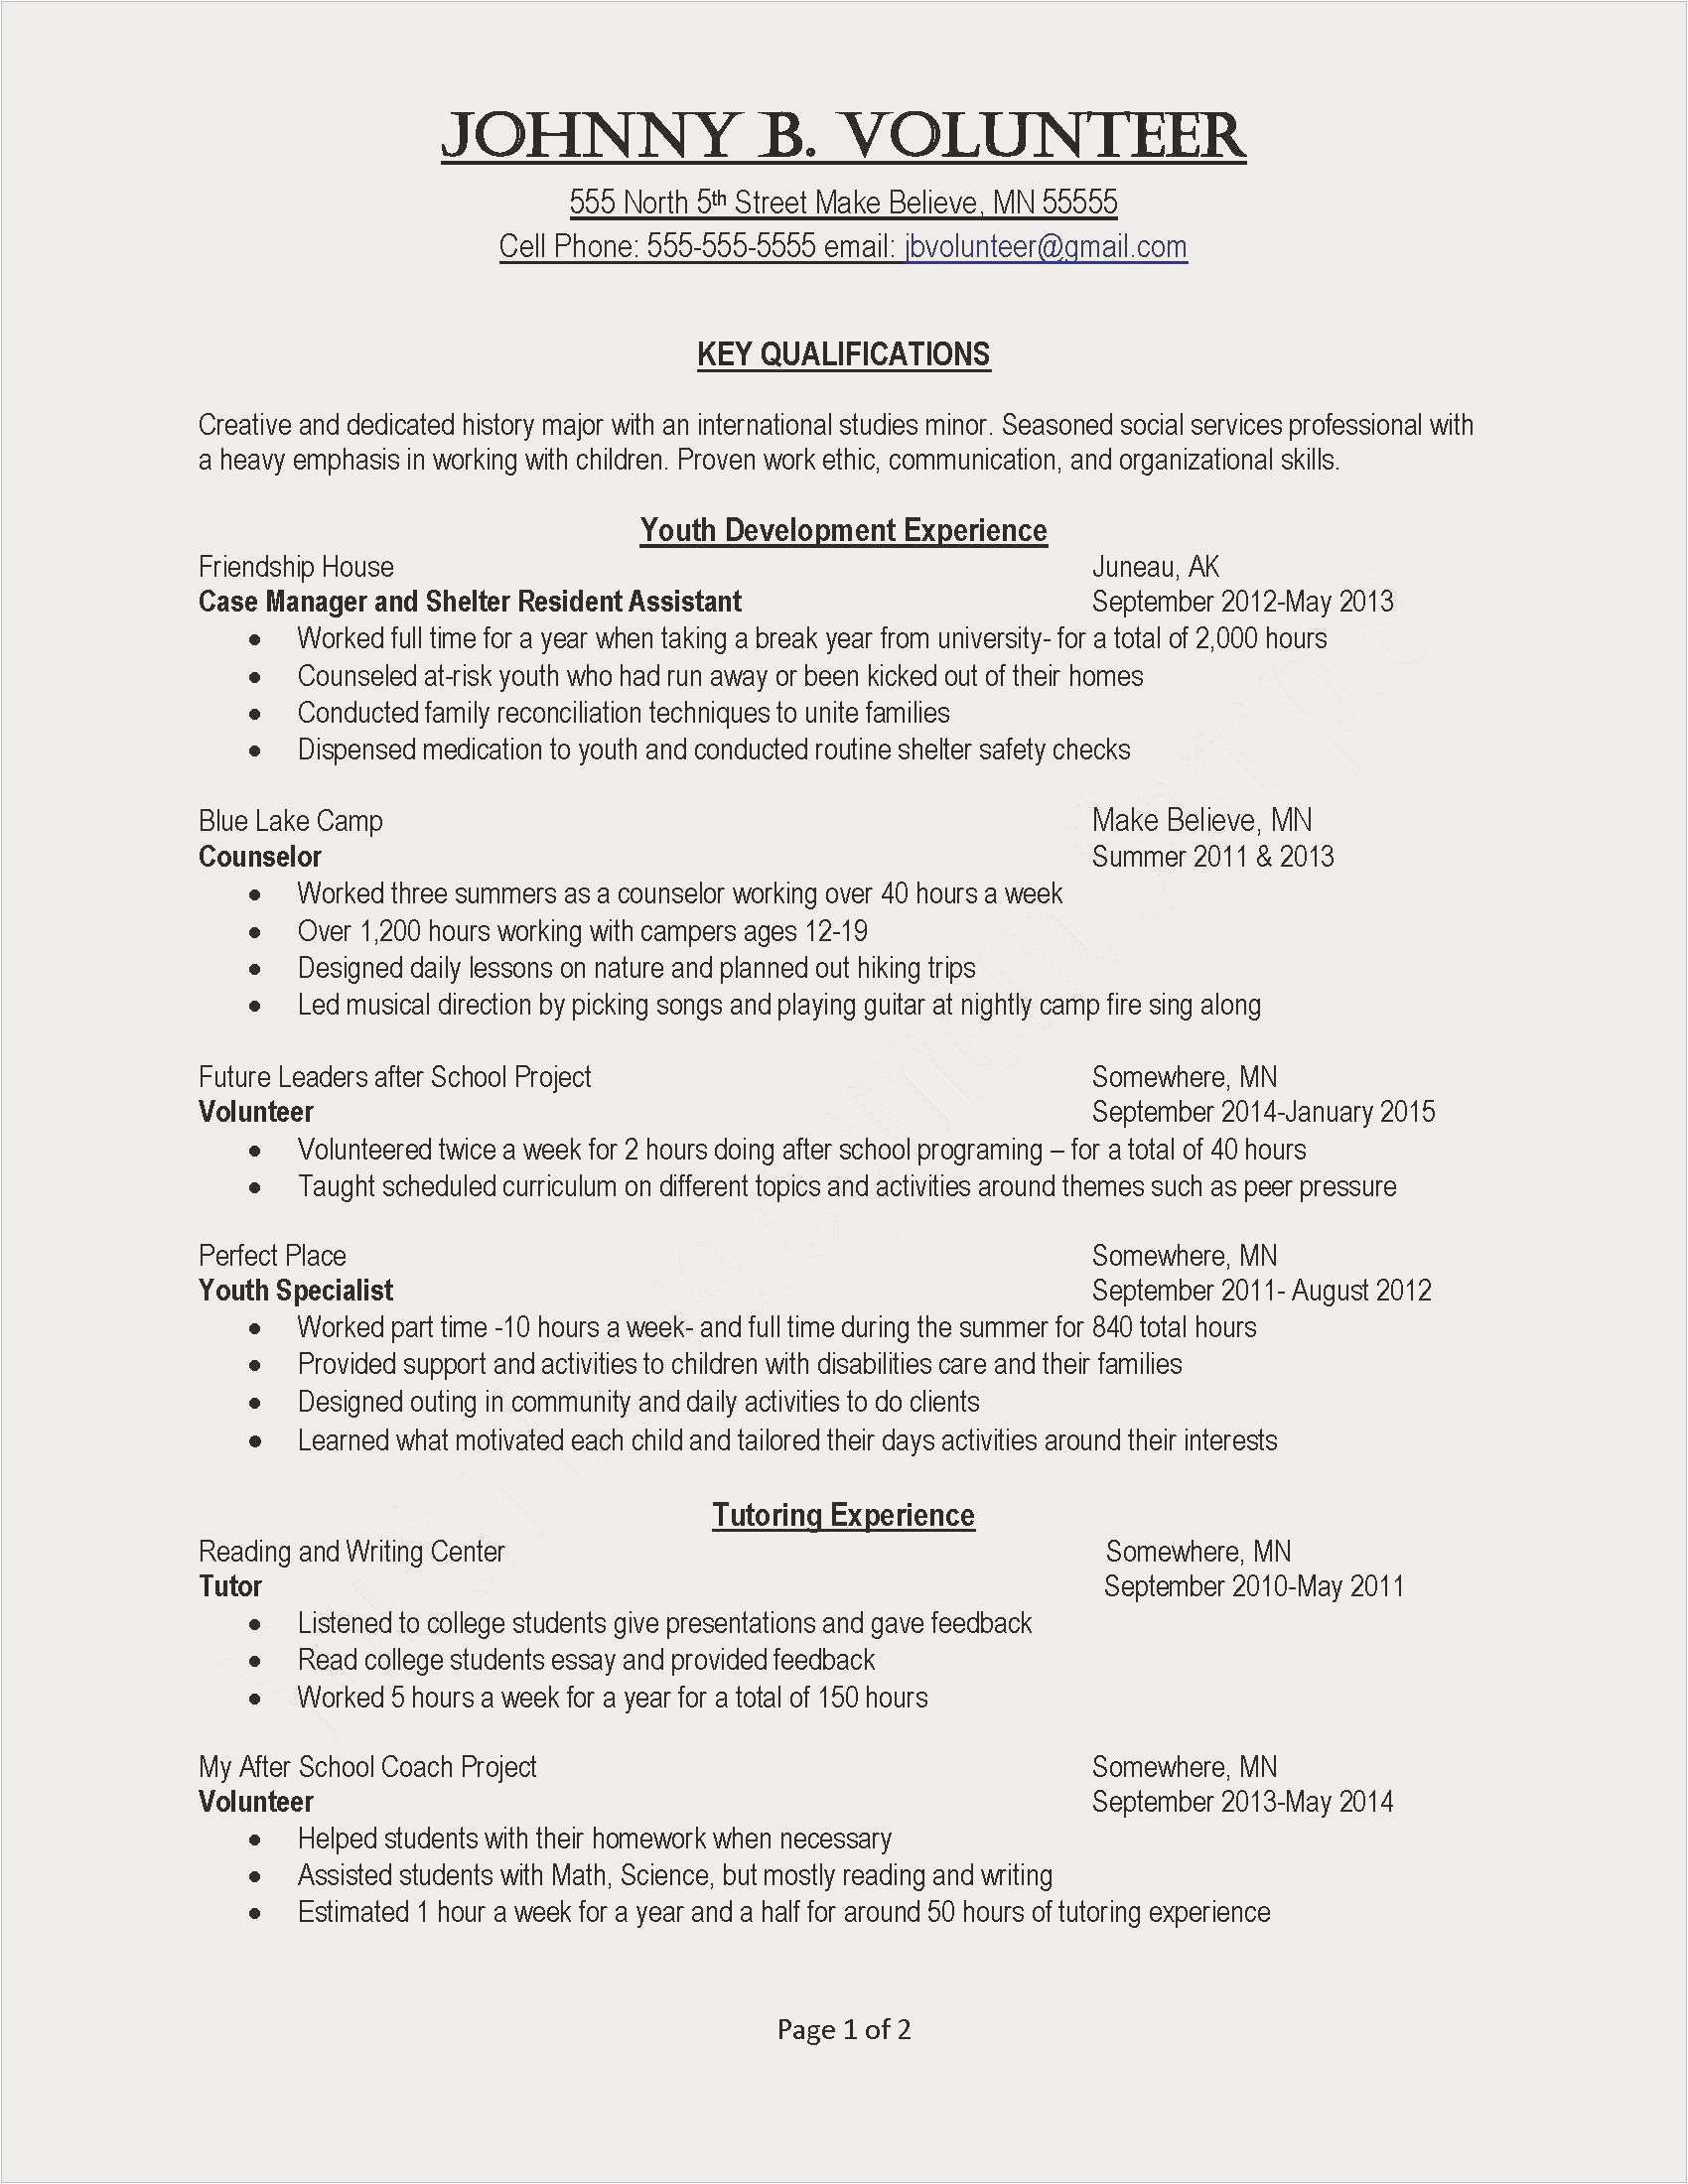 Resume Sample for College Student - Resumes for College Students Simple Unique Internship Resume Sample